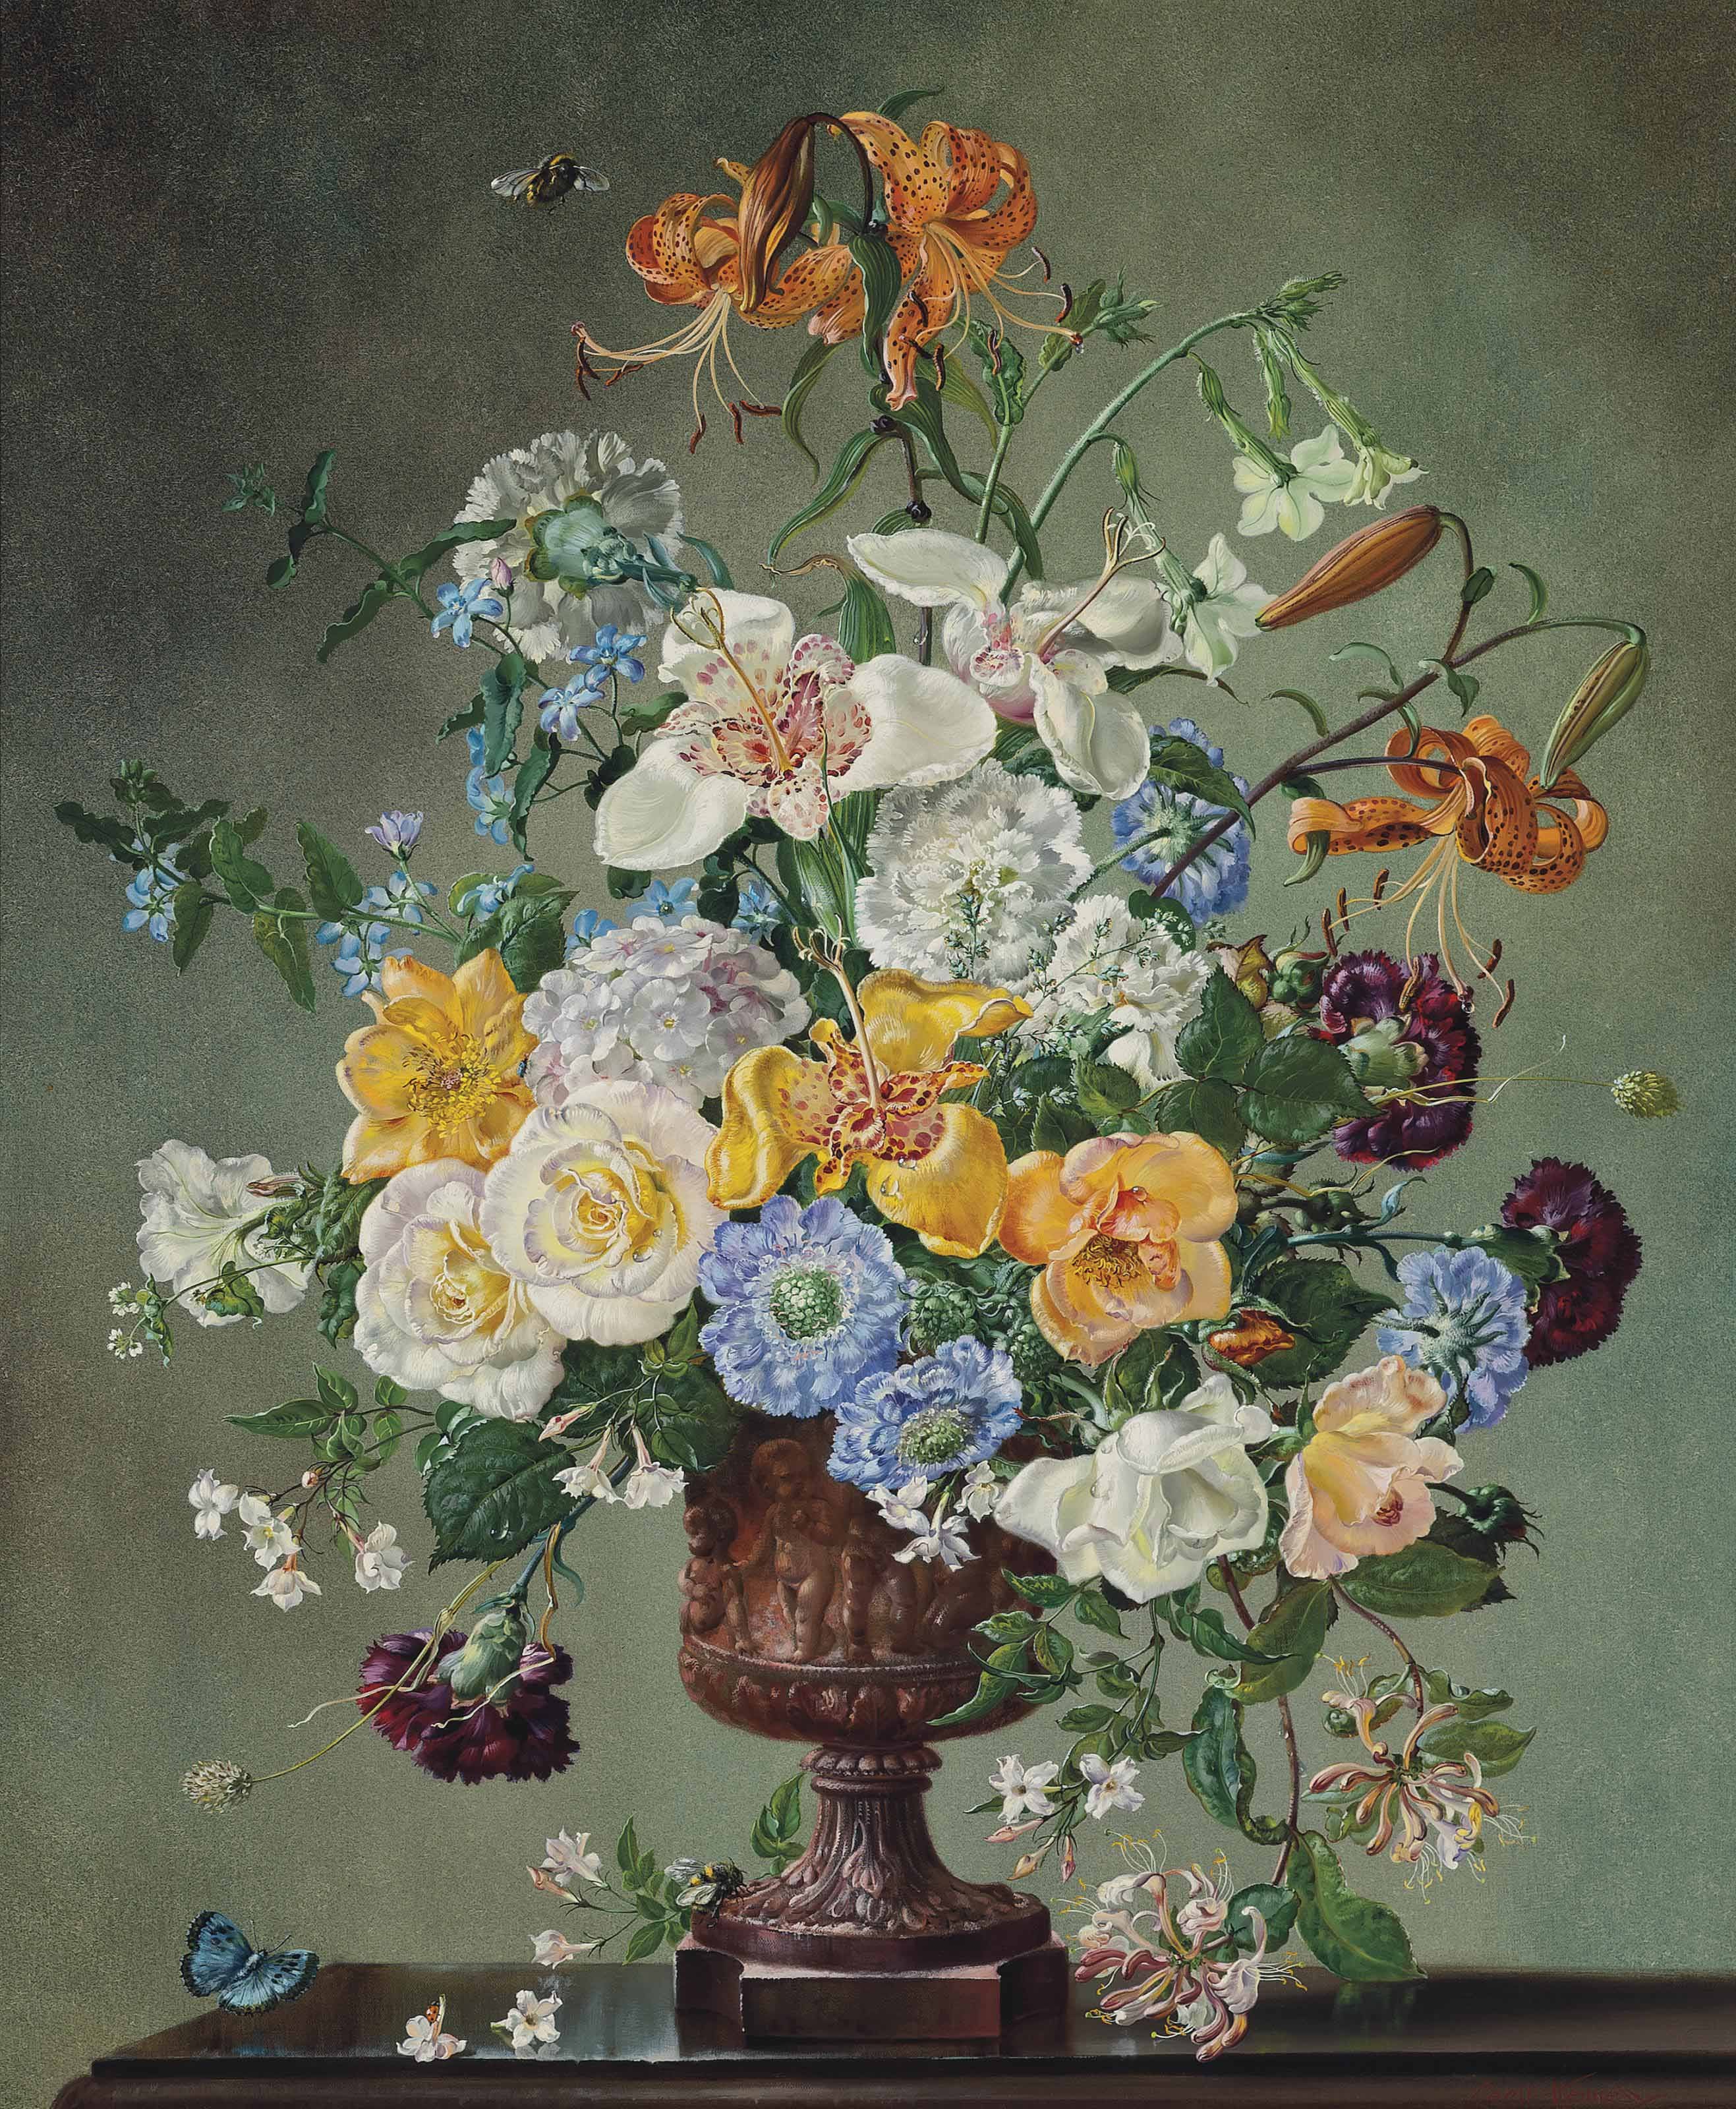 Lilies, roses, carnations, honeysuckle, forget-me-nots and other summer flowers, in an urn